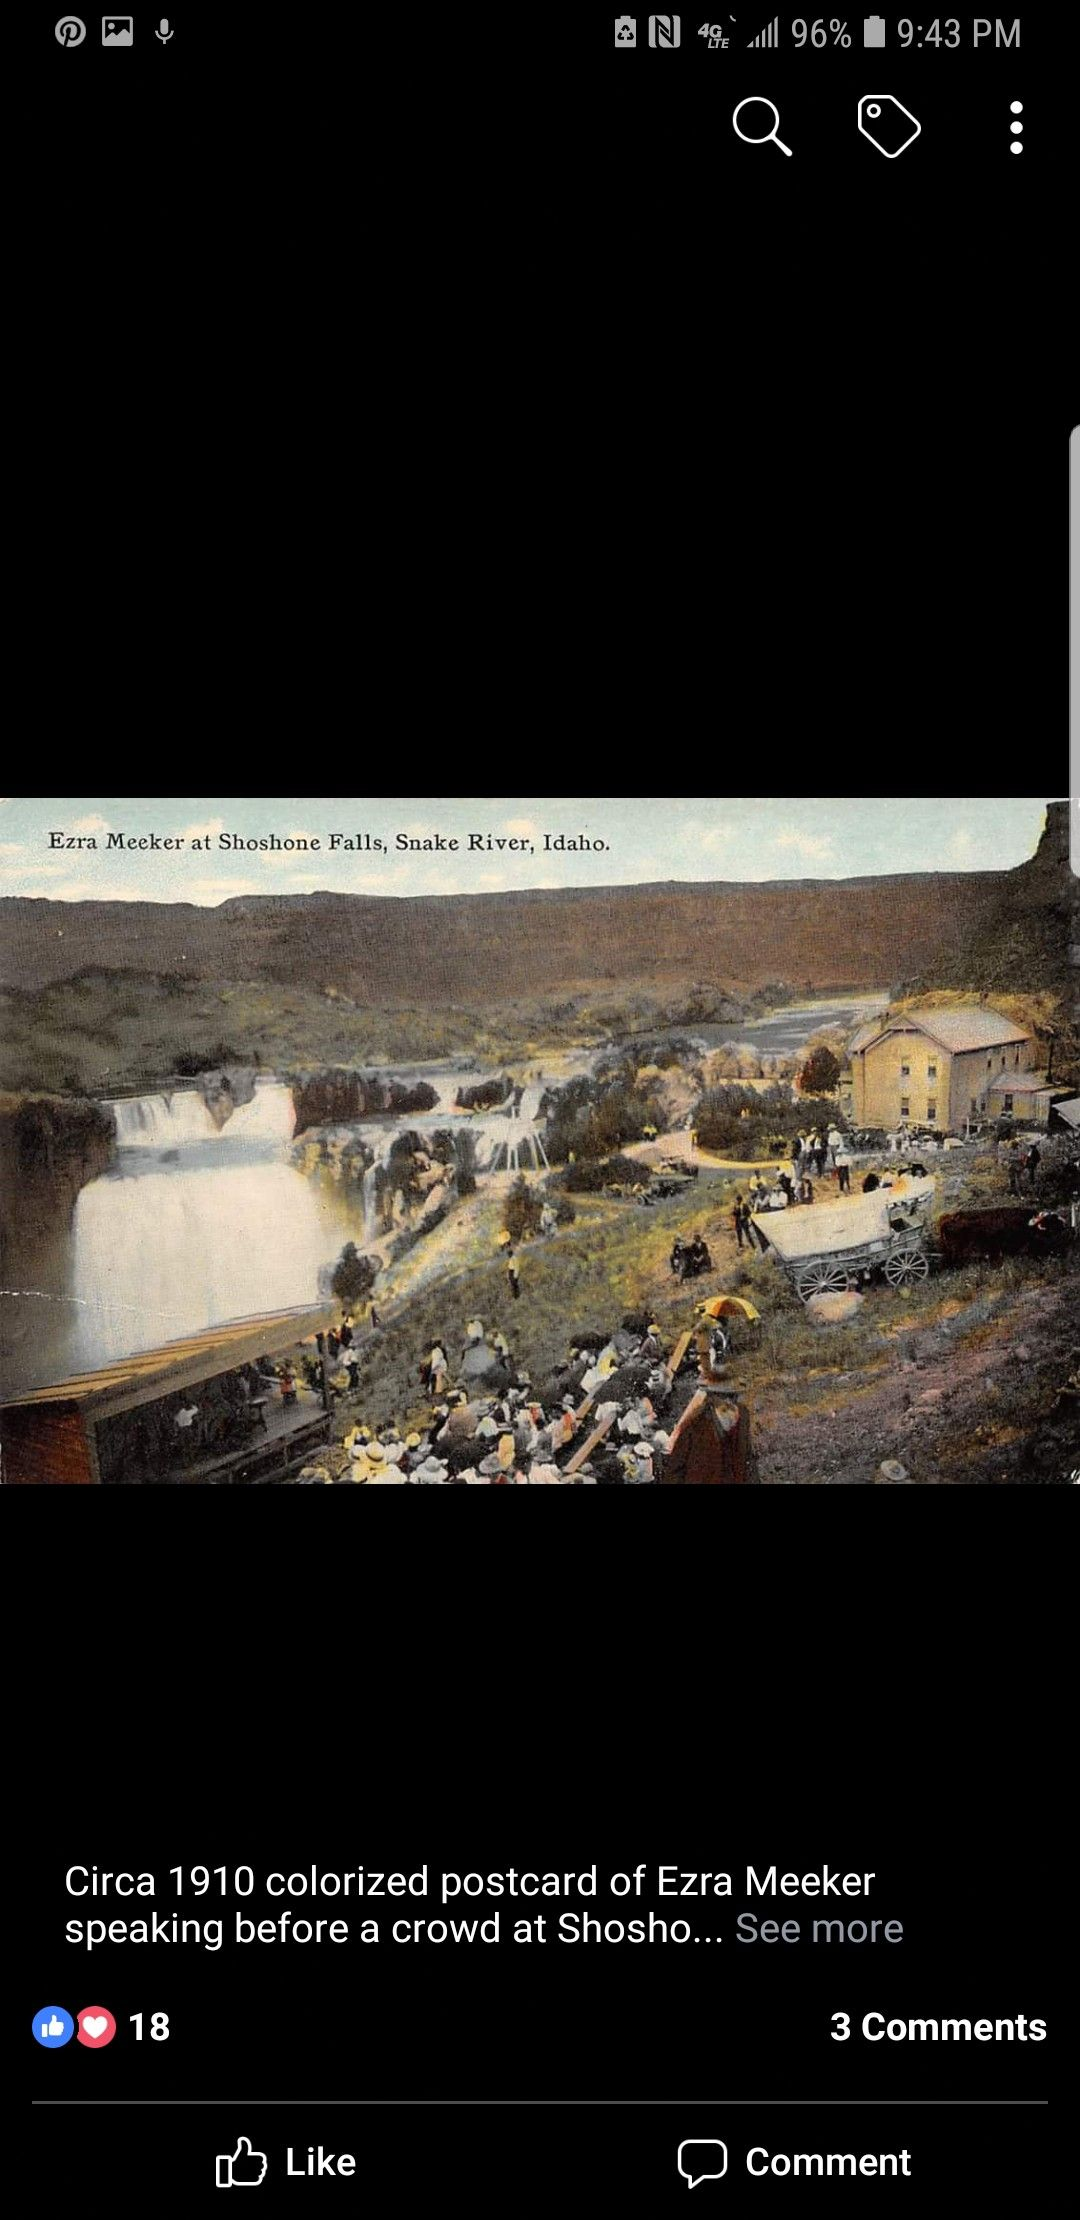 Pin by Becky Burley on pictures Twin falls, Shoshone